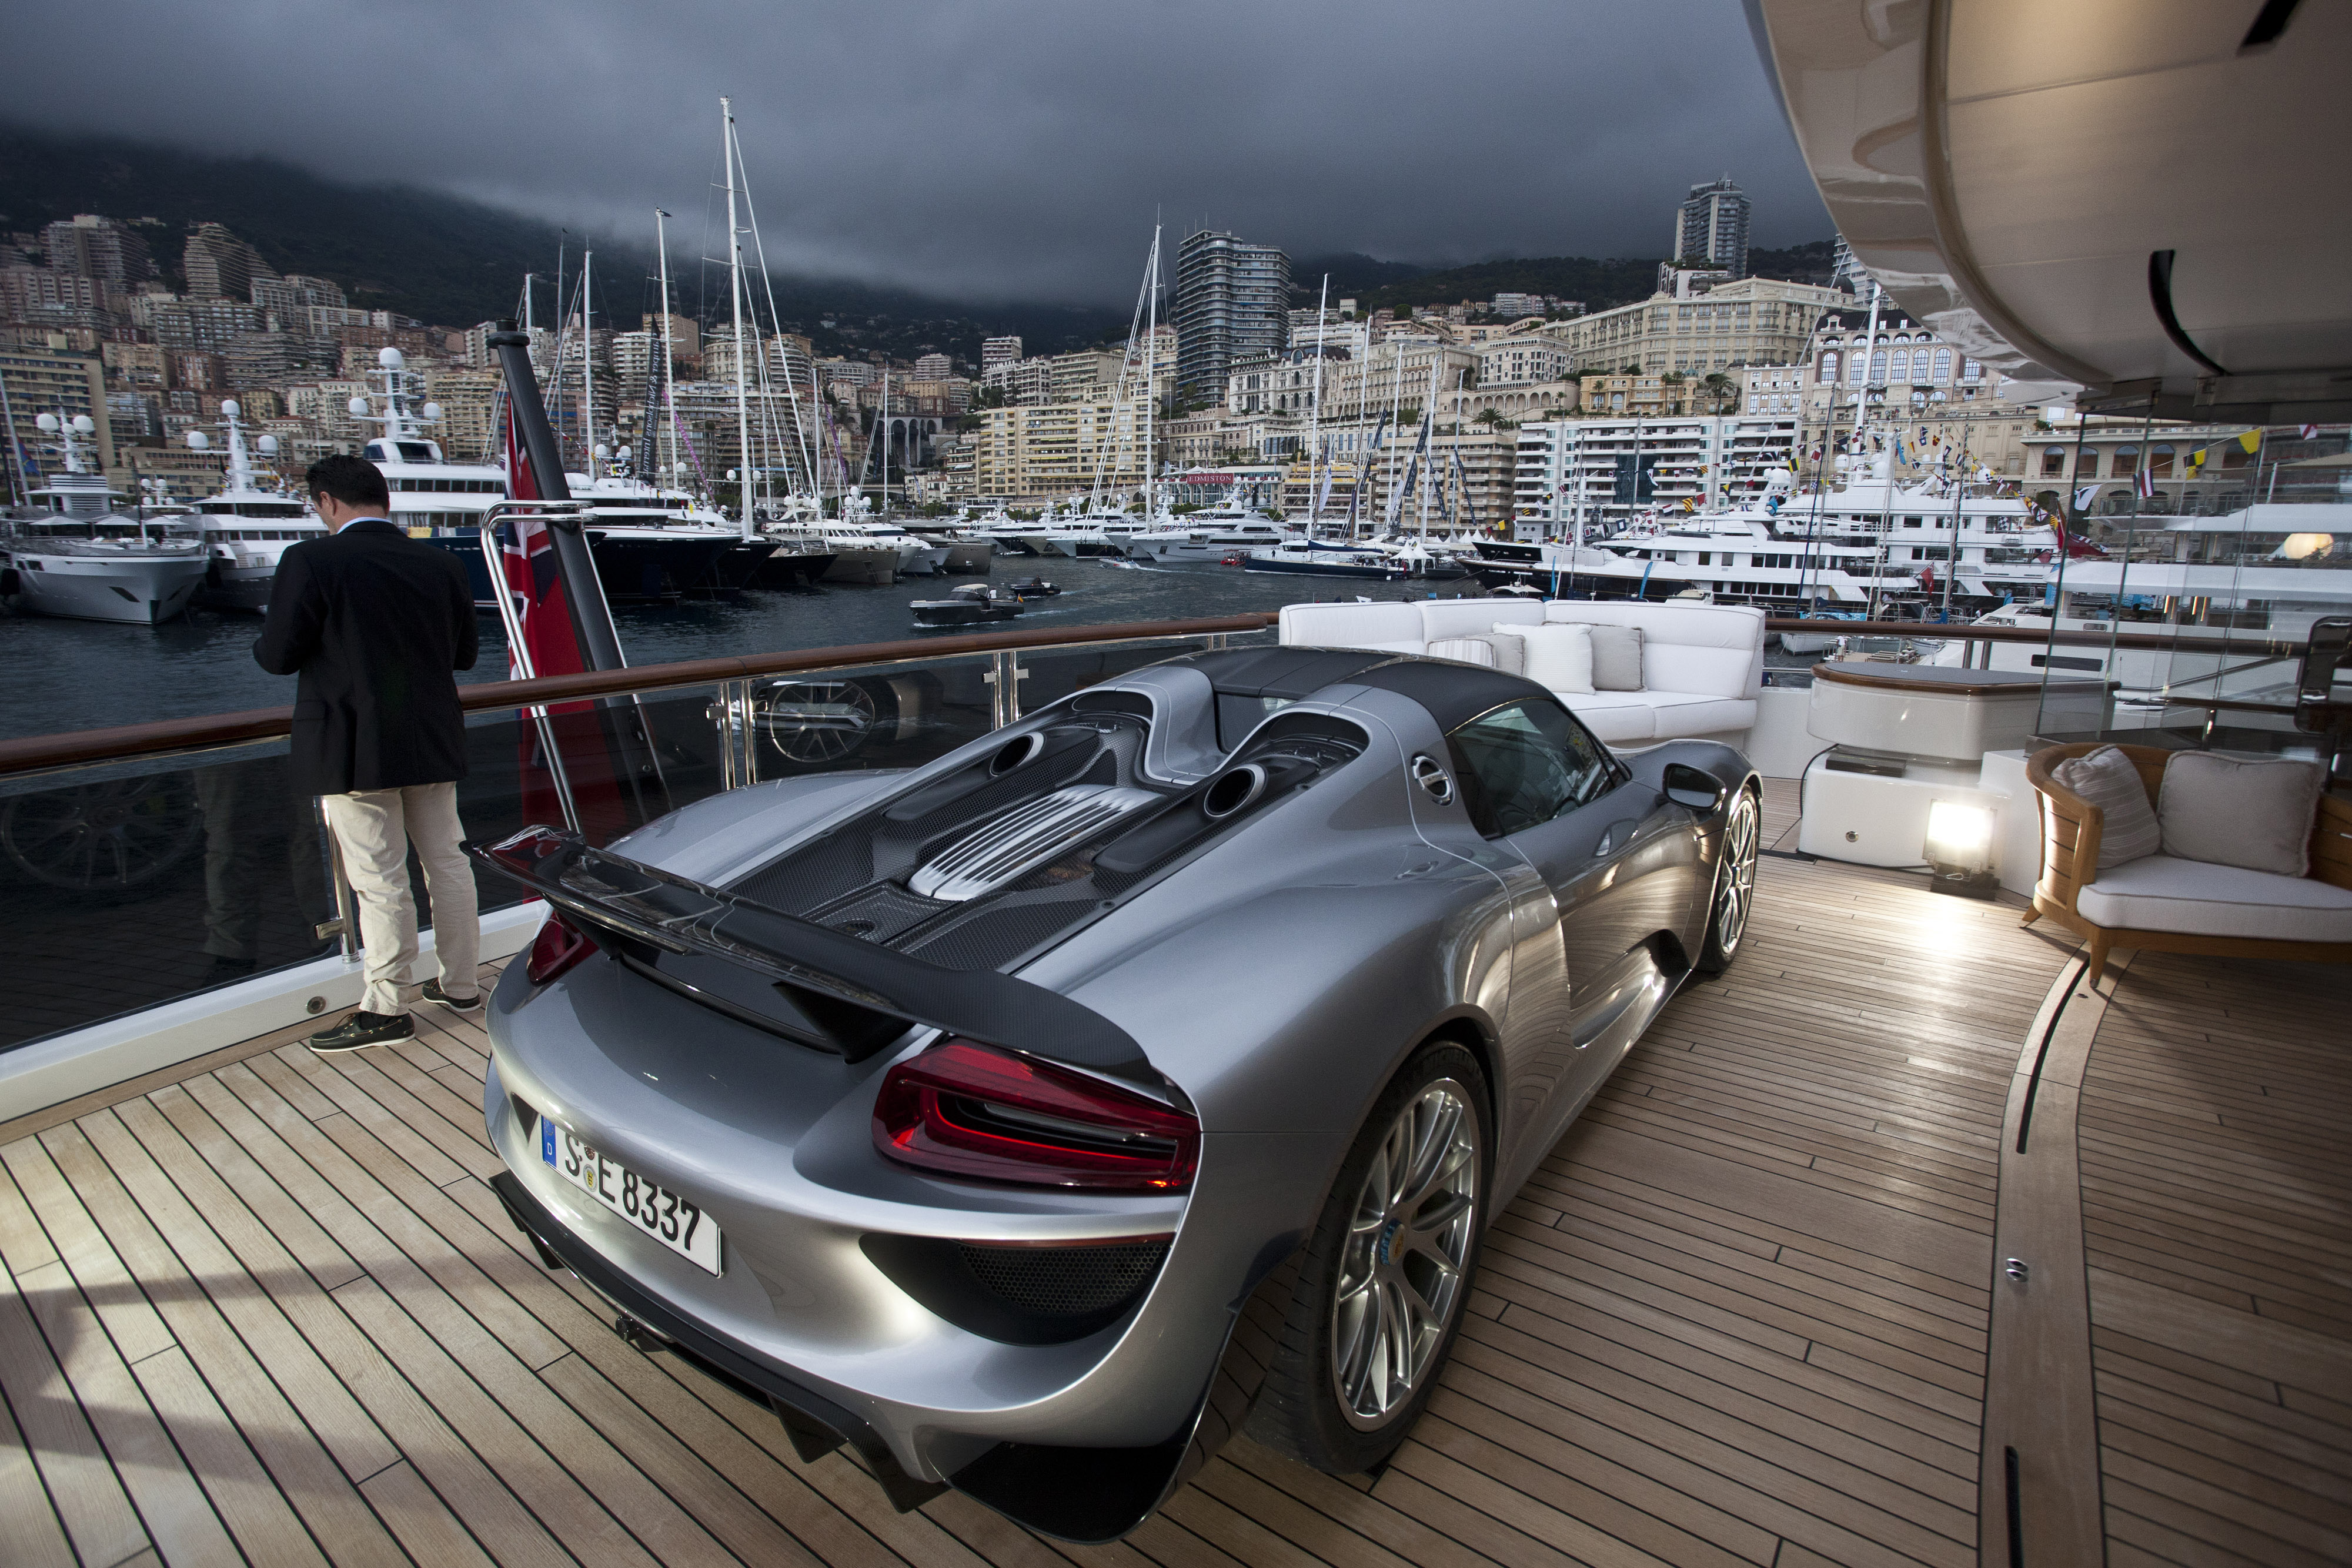 A Porsche 918 Spyder automobile, produced by Porsche SE, sits on the deck of the 88m luxury superyacht  Quattroelle, in Monaco, France, on Wednesday, Sept. 25, 2013.